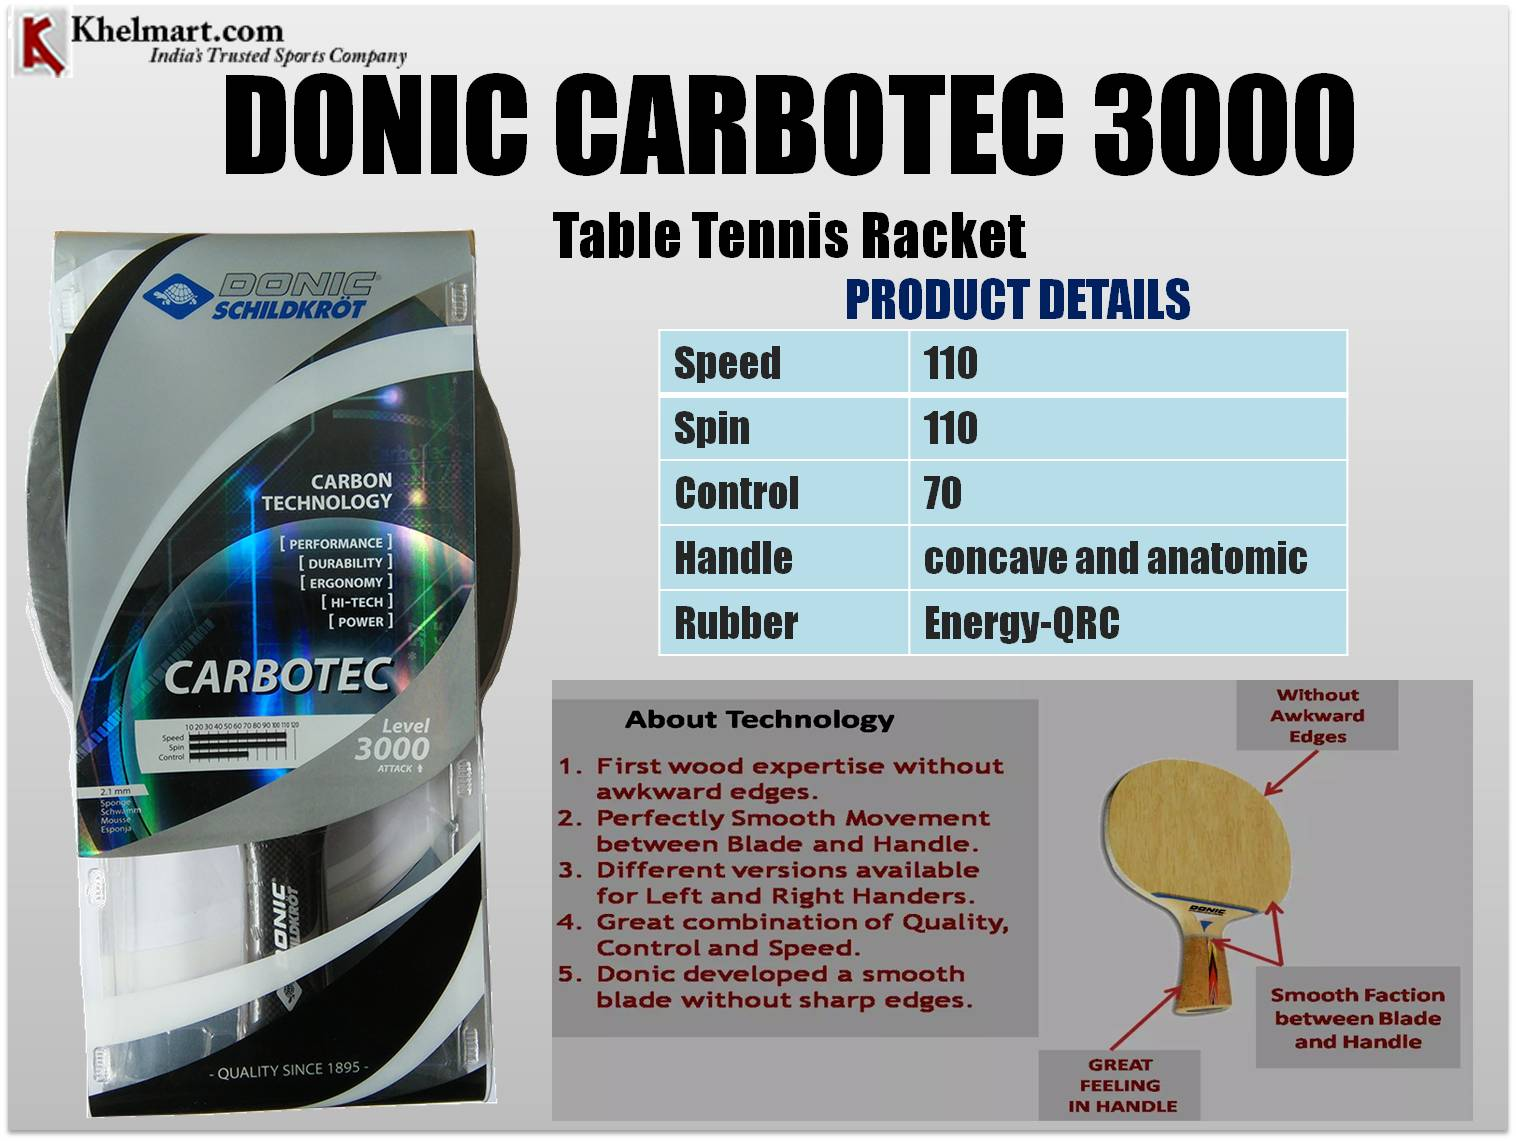 DONIC_CARBOTEC_3000_Table_Tennis_Racket.jpg